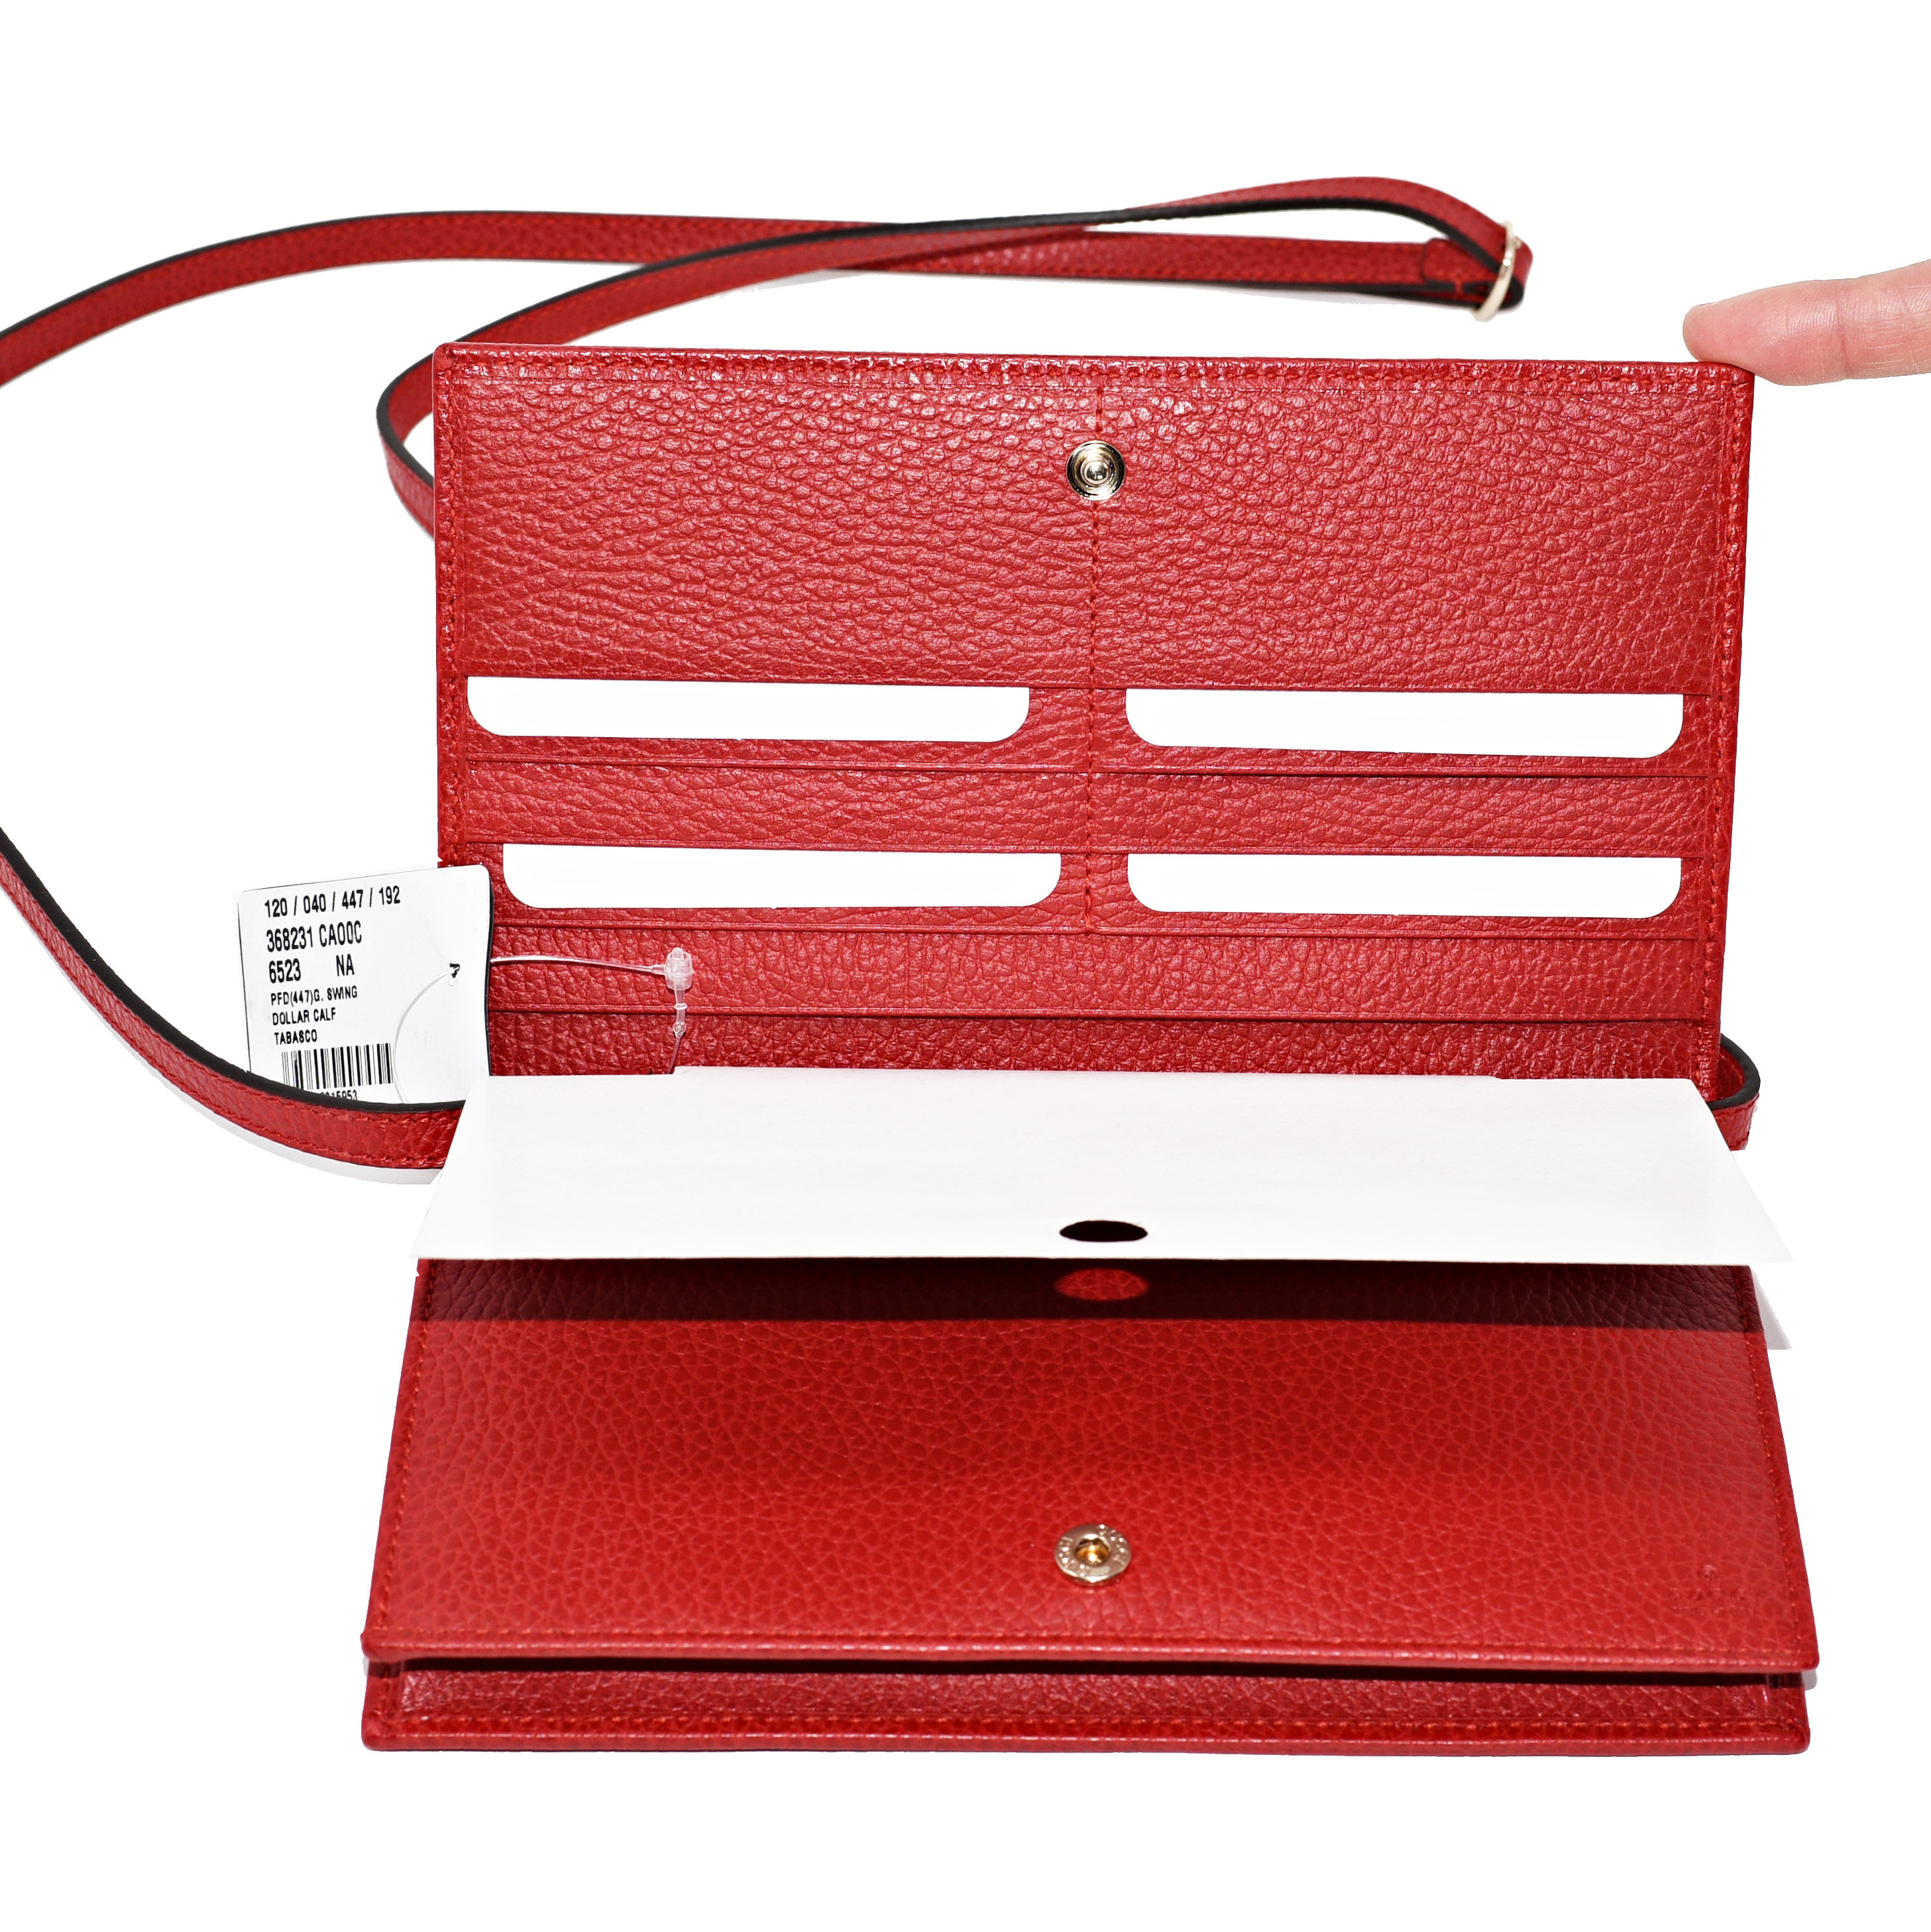 2d11a16ea1ed Gucci Swing Wallet On Strap Red Leather Cross Body Bag